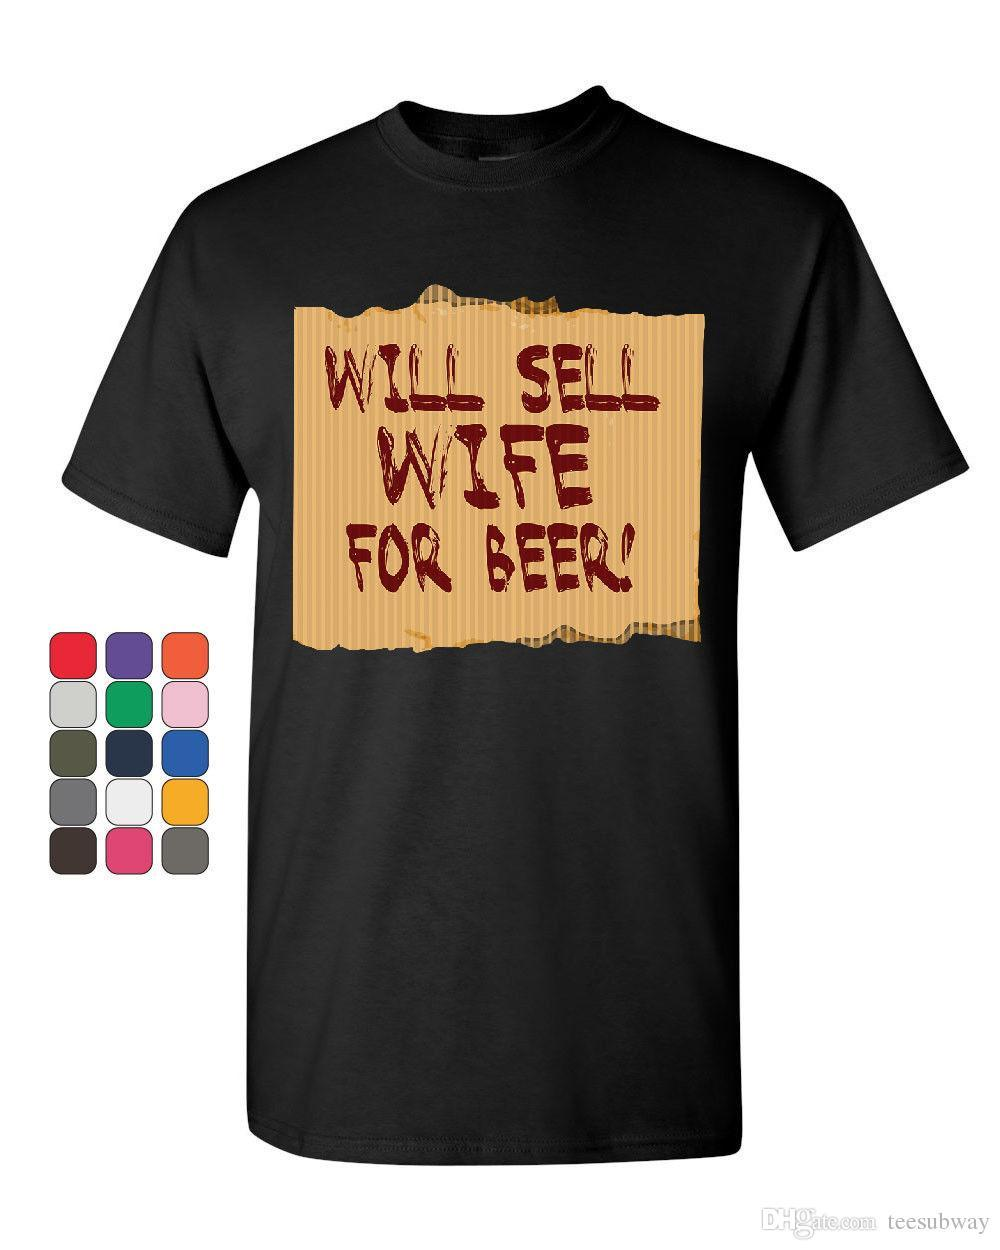 ad7aa2056 Will Sell Wife For Beer T Shirt Funny Drinking Tee Tees Shirt Men Unique  Custom Short Sleeve Plus Size Group Tshirt Cool Team Shirts Crazy Shirt  Designs ...